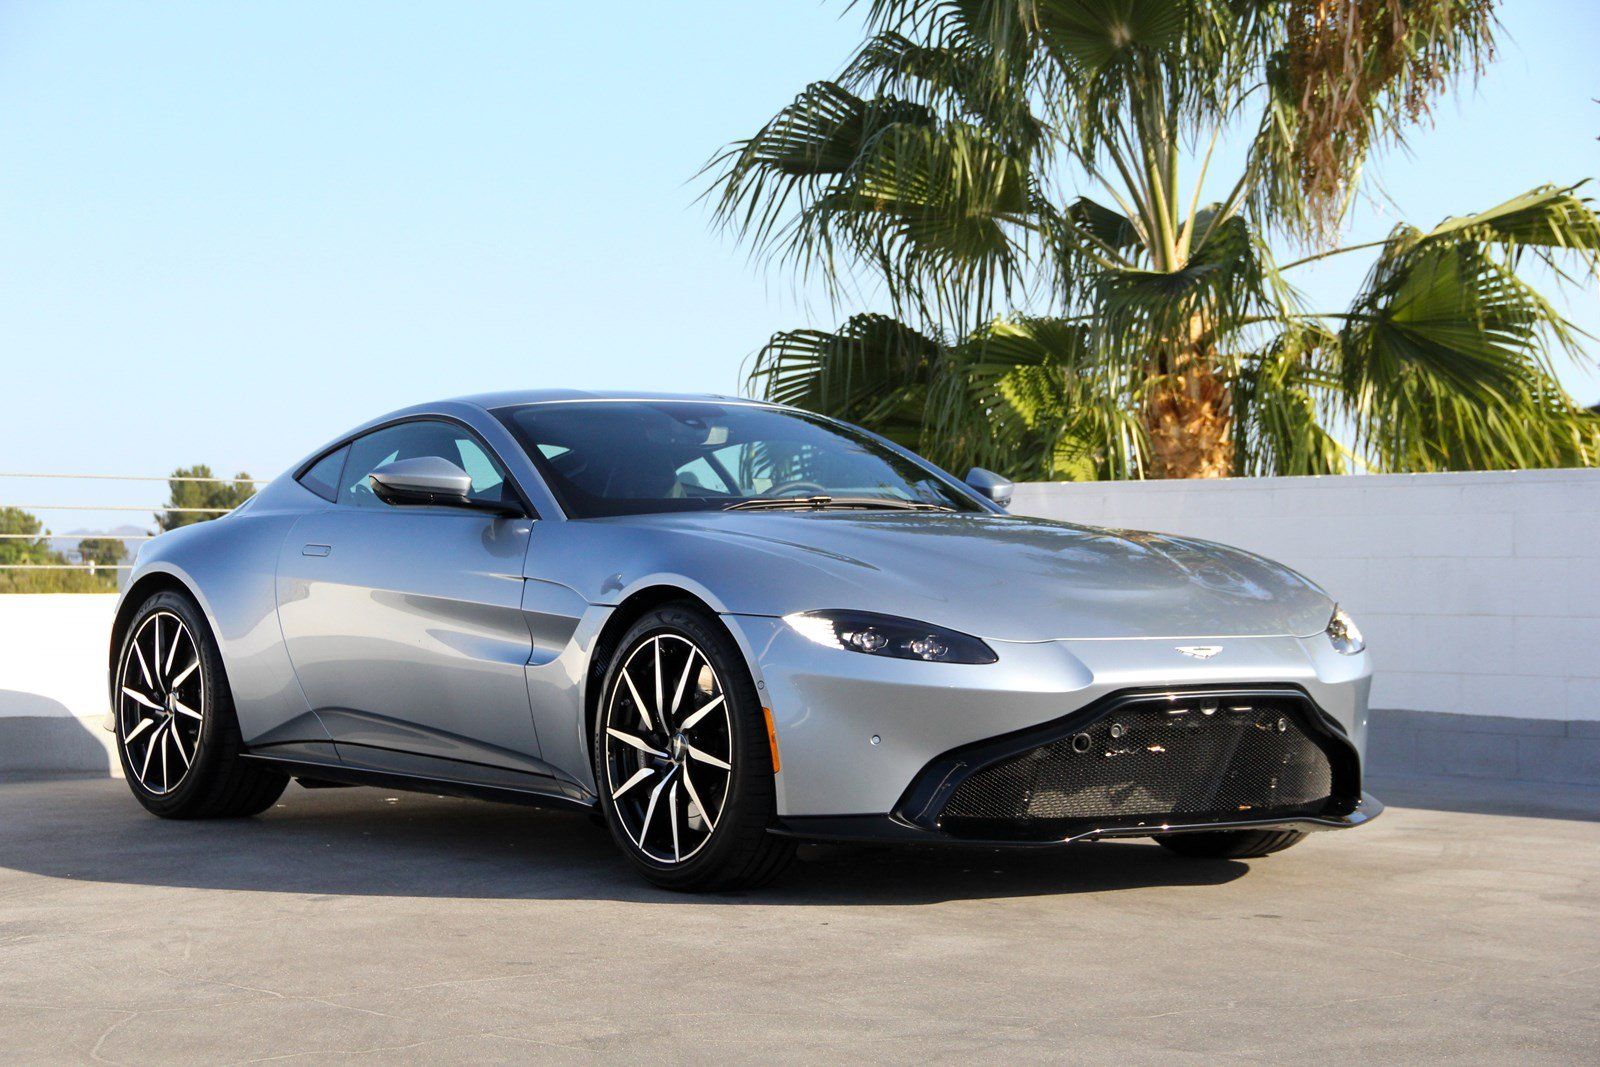 Galpin Aston Martin Los Angeles Aston Martin Special Offers Van - Lease aston martin